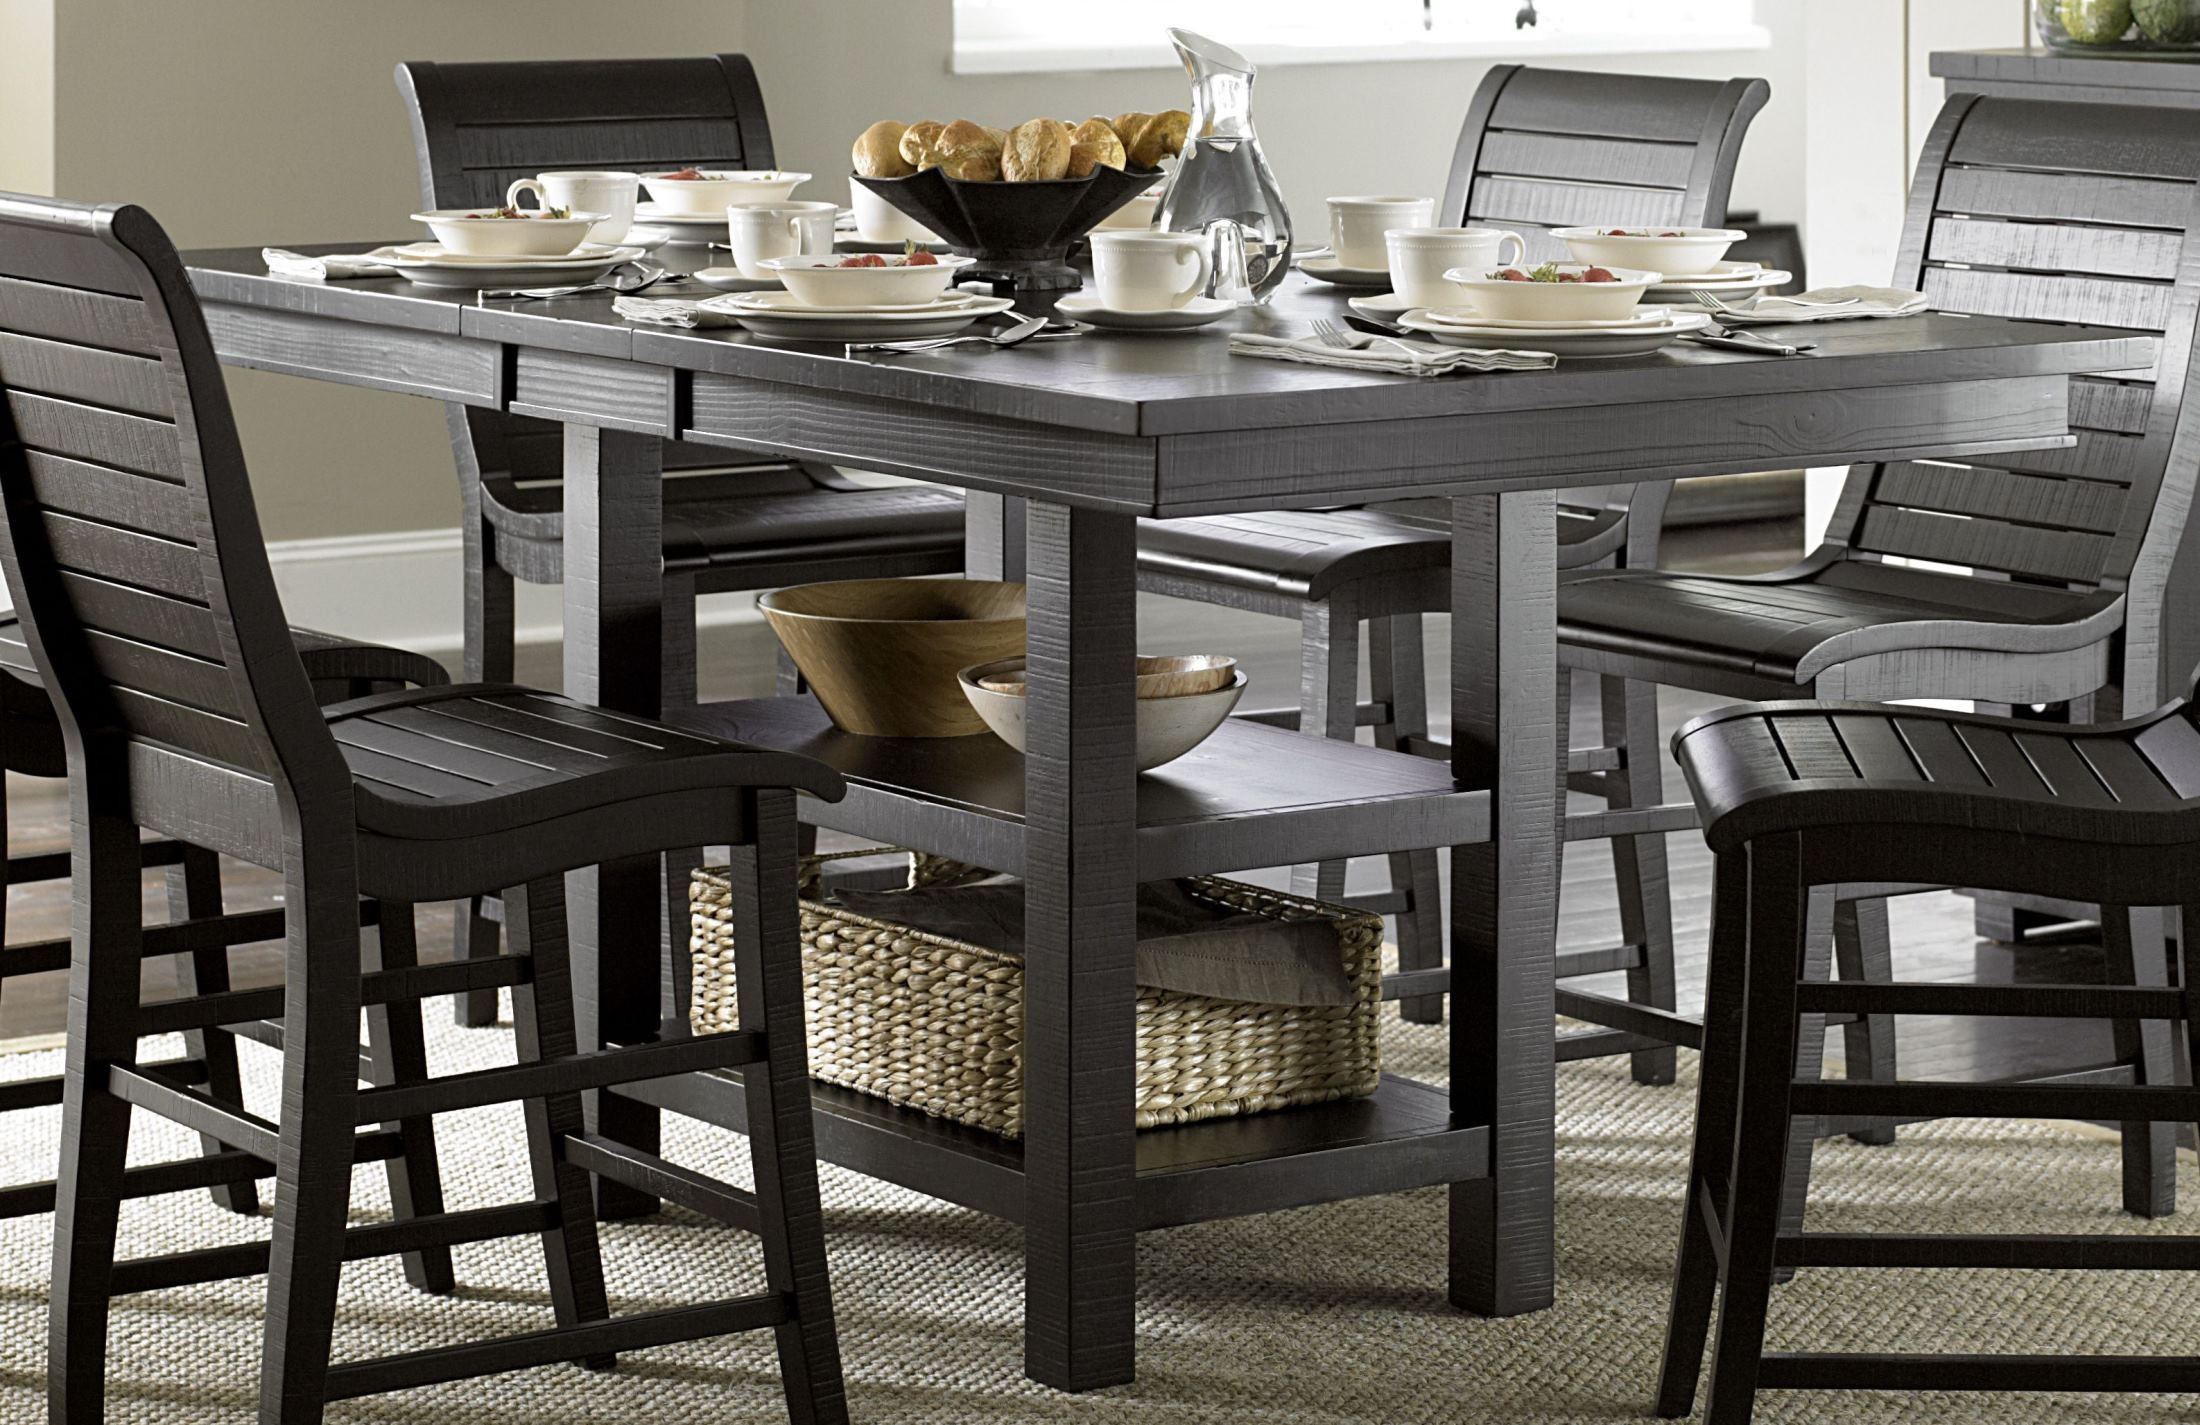 Willow Distressed Black Rectangular Counter Height Dining With 2017 Andrenique Bar Height Dining Tables (View 2 of 15)